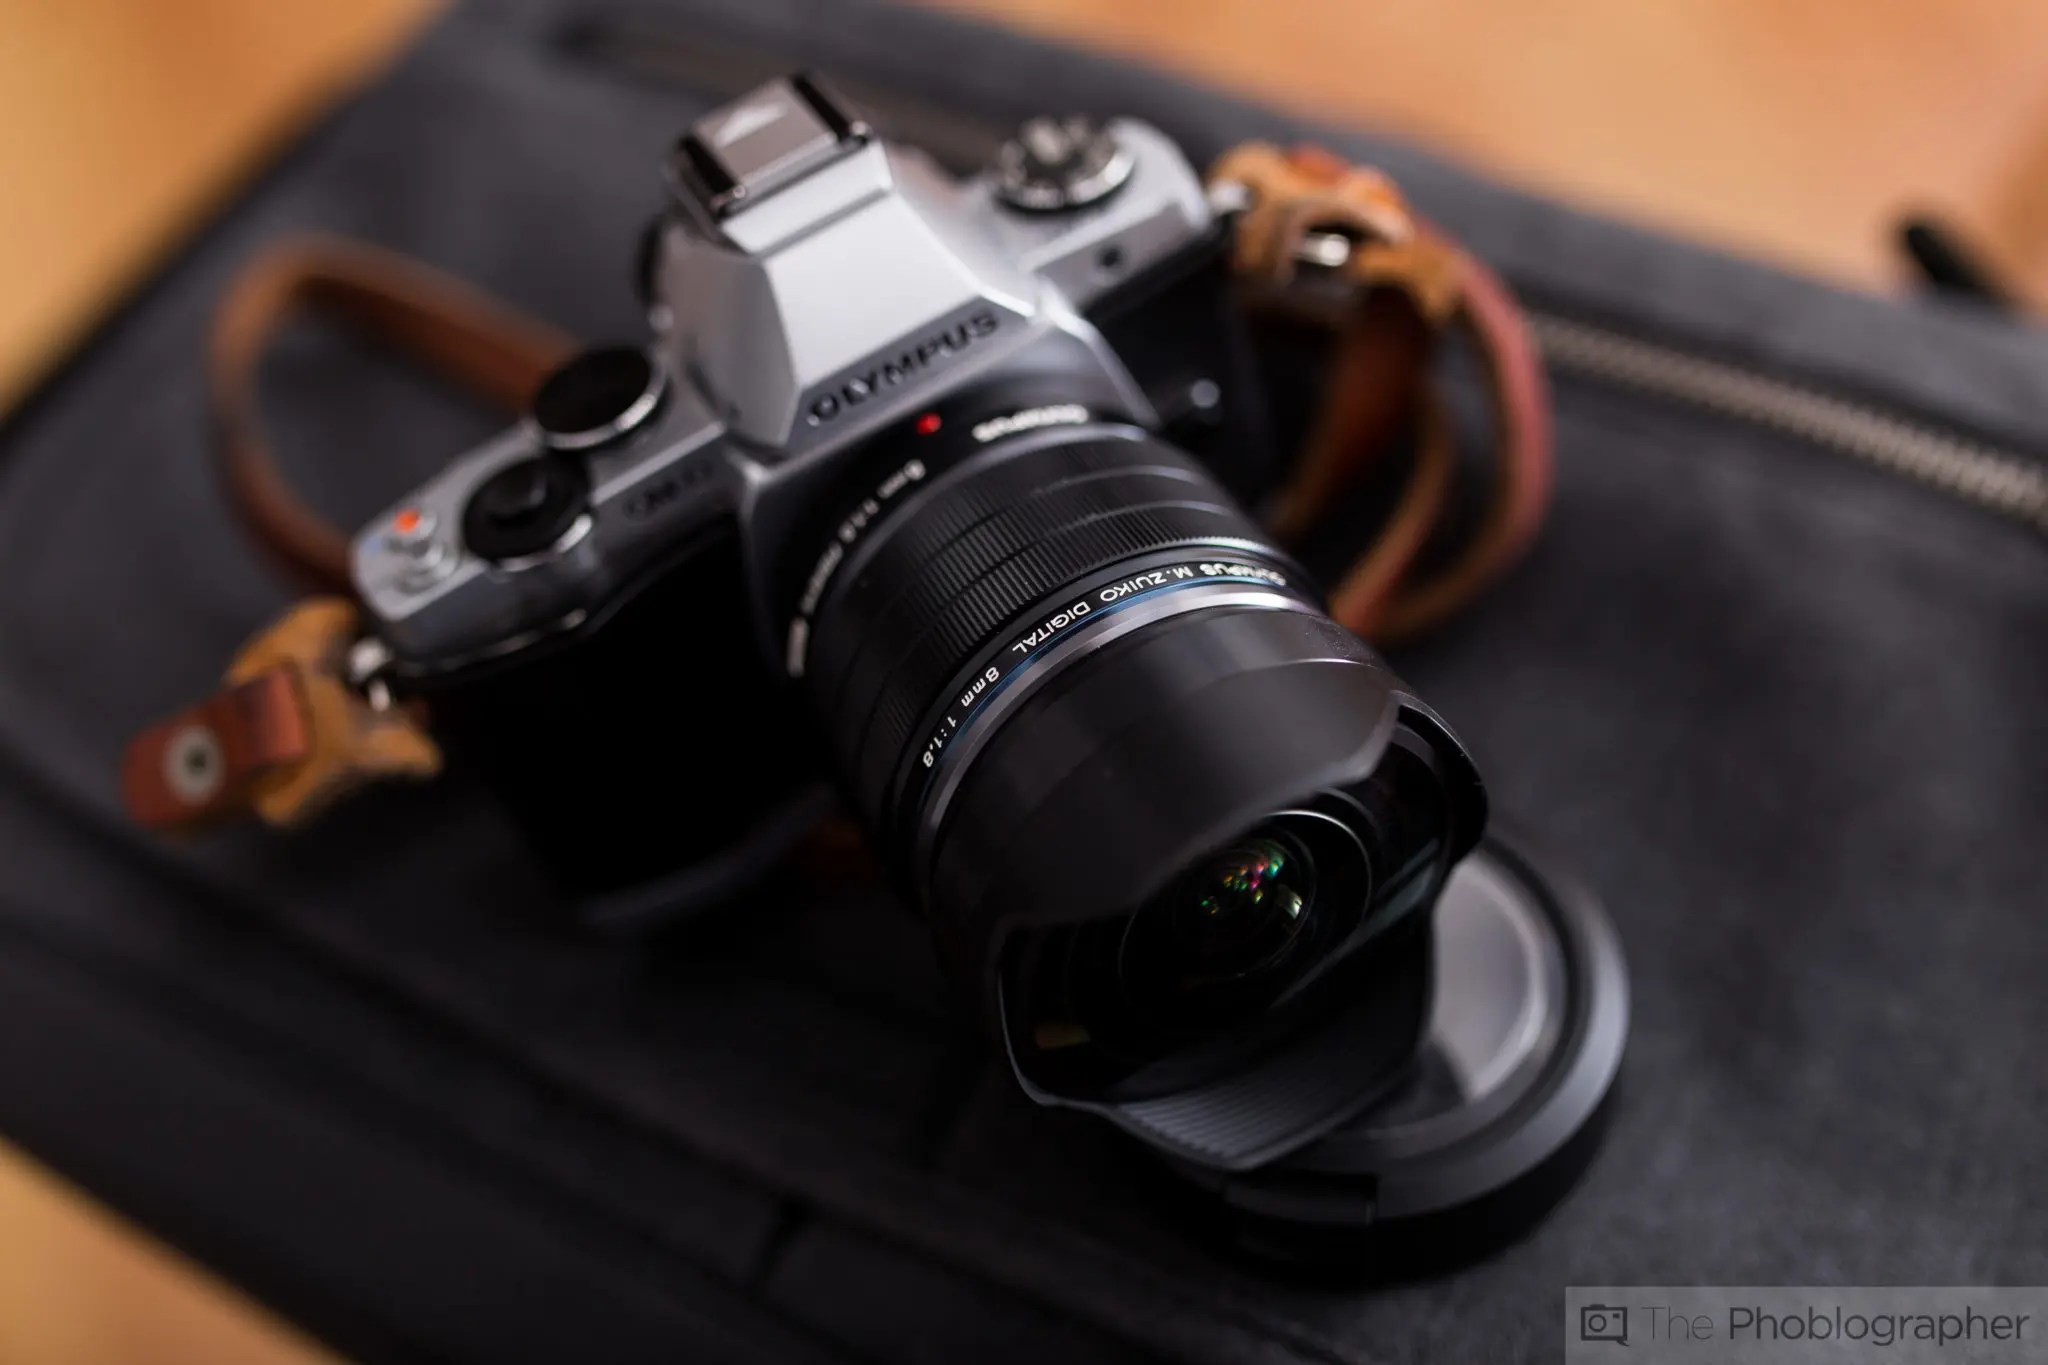 Chris Gampat The Phoblographer Olympus 8mm f1.8 fisheye lens review images product photos (1 of 1)ISO 1001-180 sec at f - 2.2